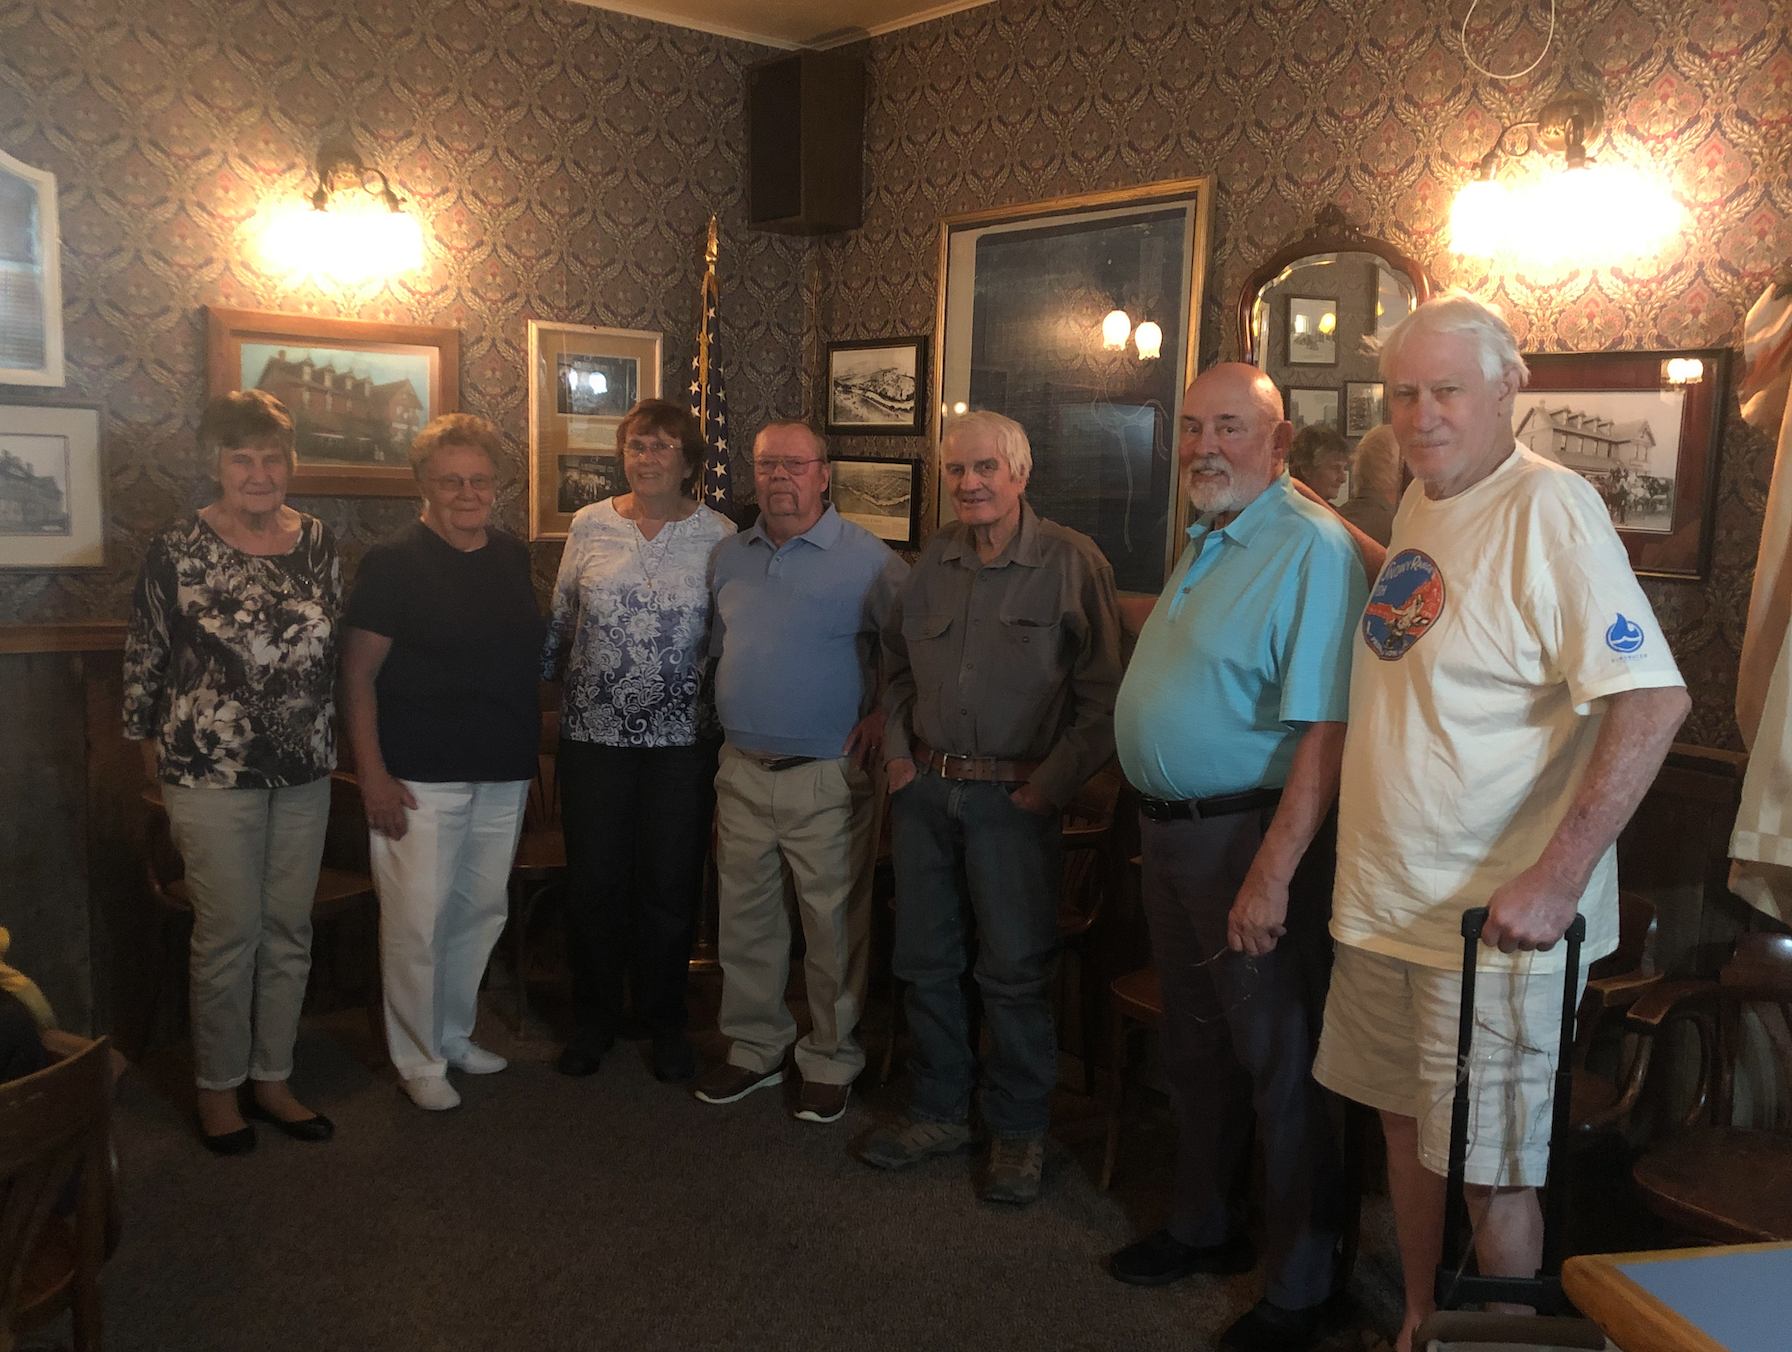 Surviving members of the PVHS Class of '59